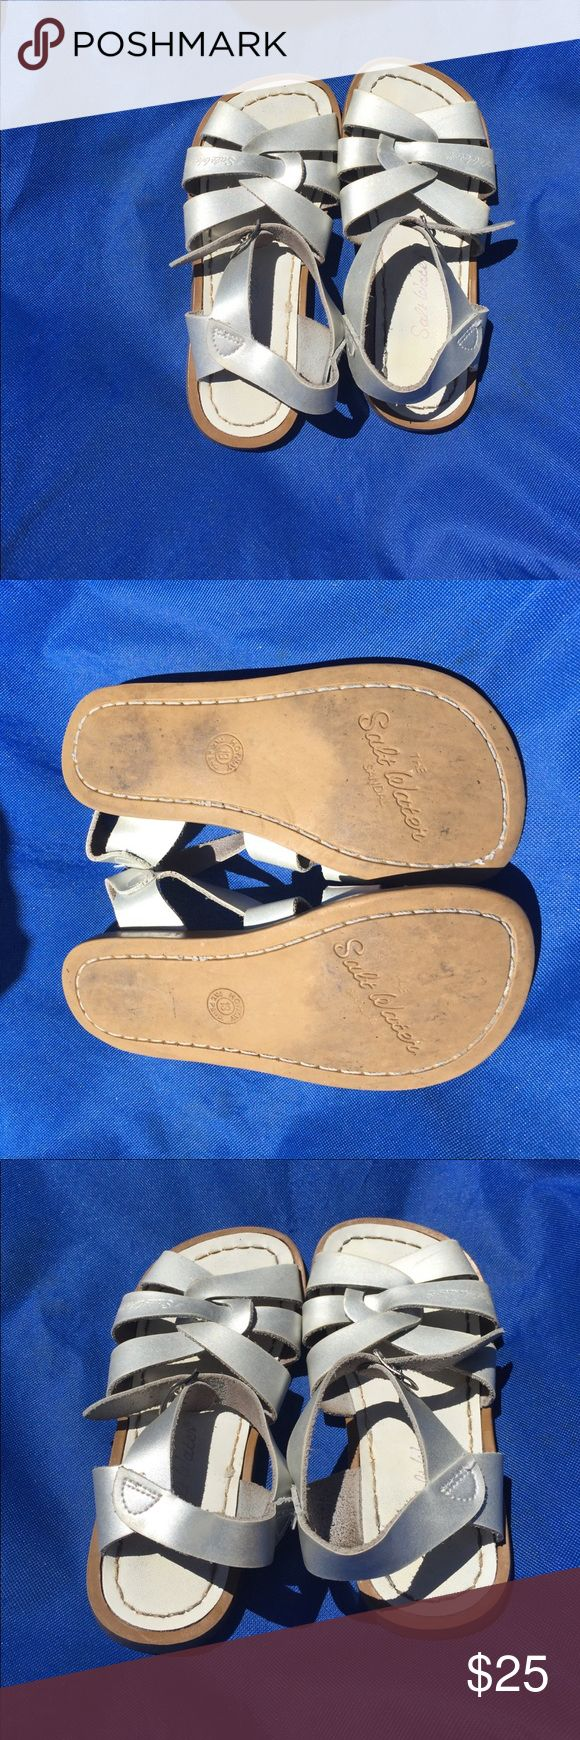 Salt water sandal the original In silver size 13 Salt water sandals by hoy the original salt water sandal in silver size 13 girls. Good used condition Salt Water Sandals by Hoy Shoes Sandals & Flip Flops